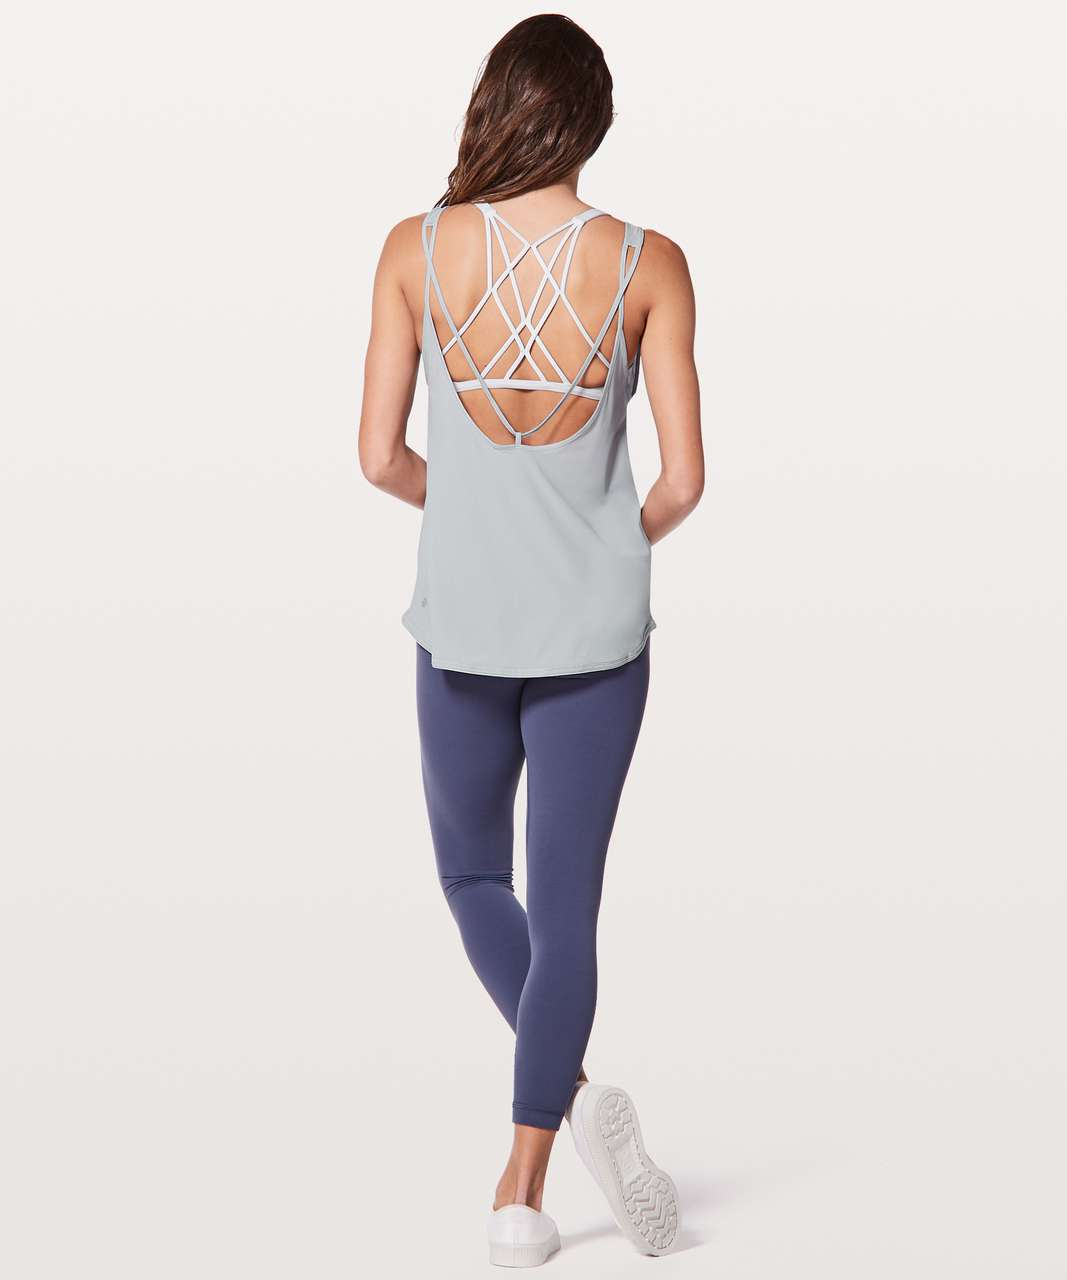 Lululemon Let It Slip Tank - Silver Fox